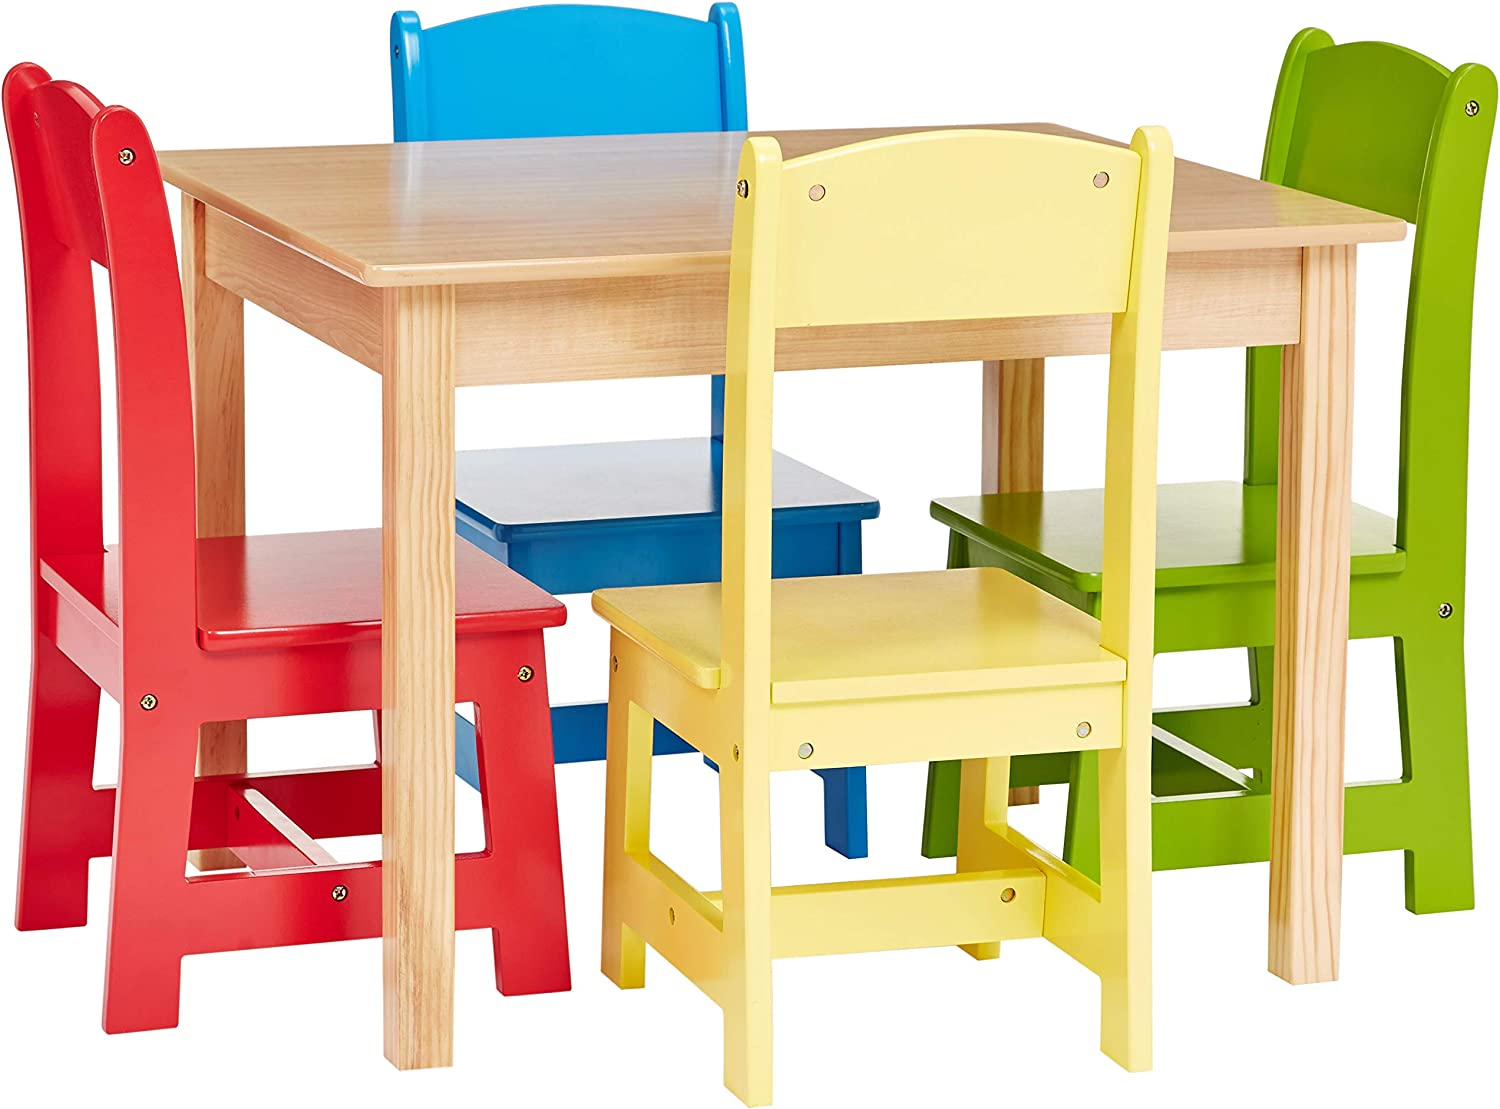 Phoenix Home Fermo Kid's Natural Wood Table and Primarycolor Chair Set (Red, Yellow, Green, bluee)